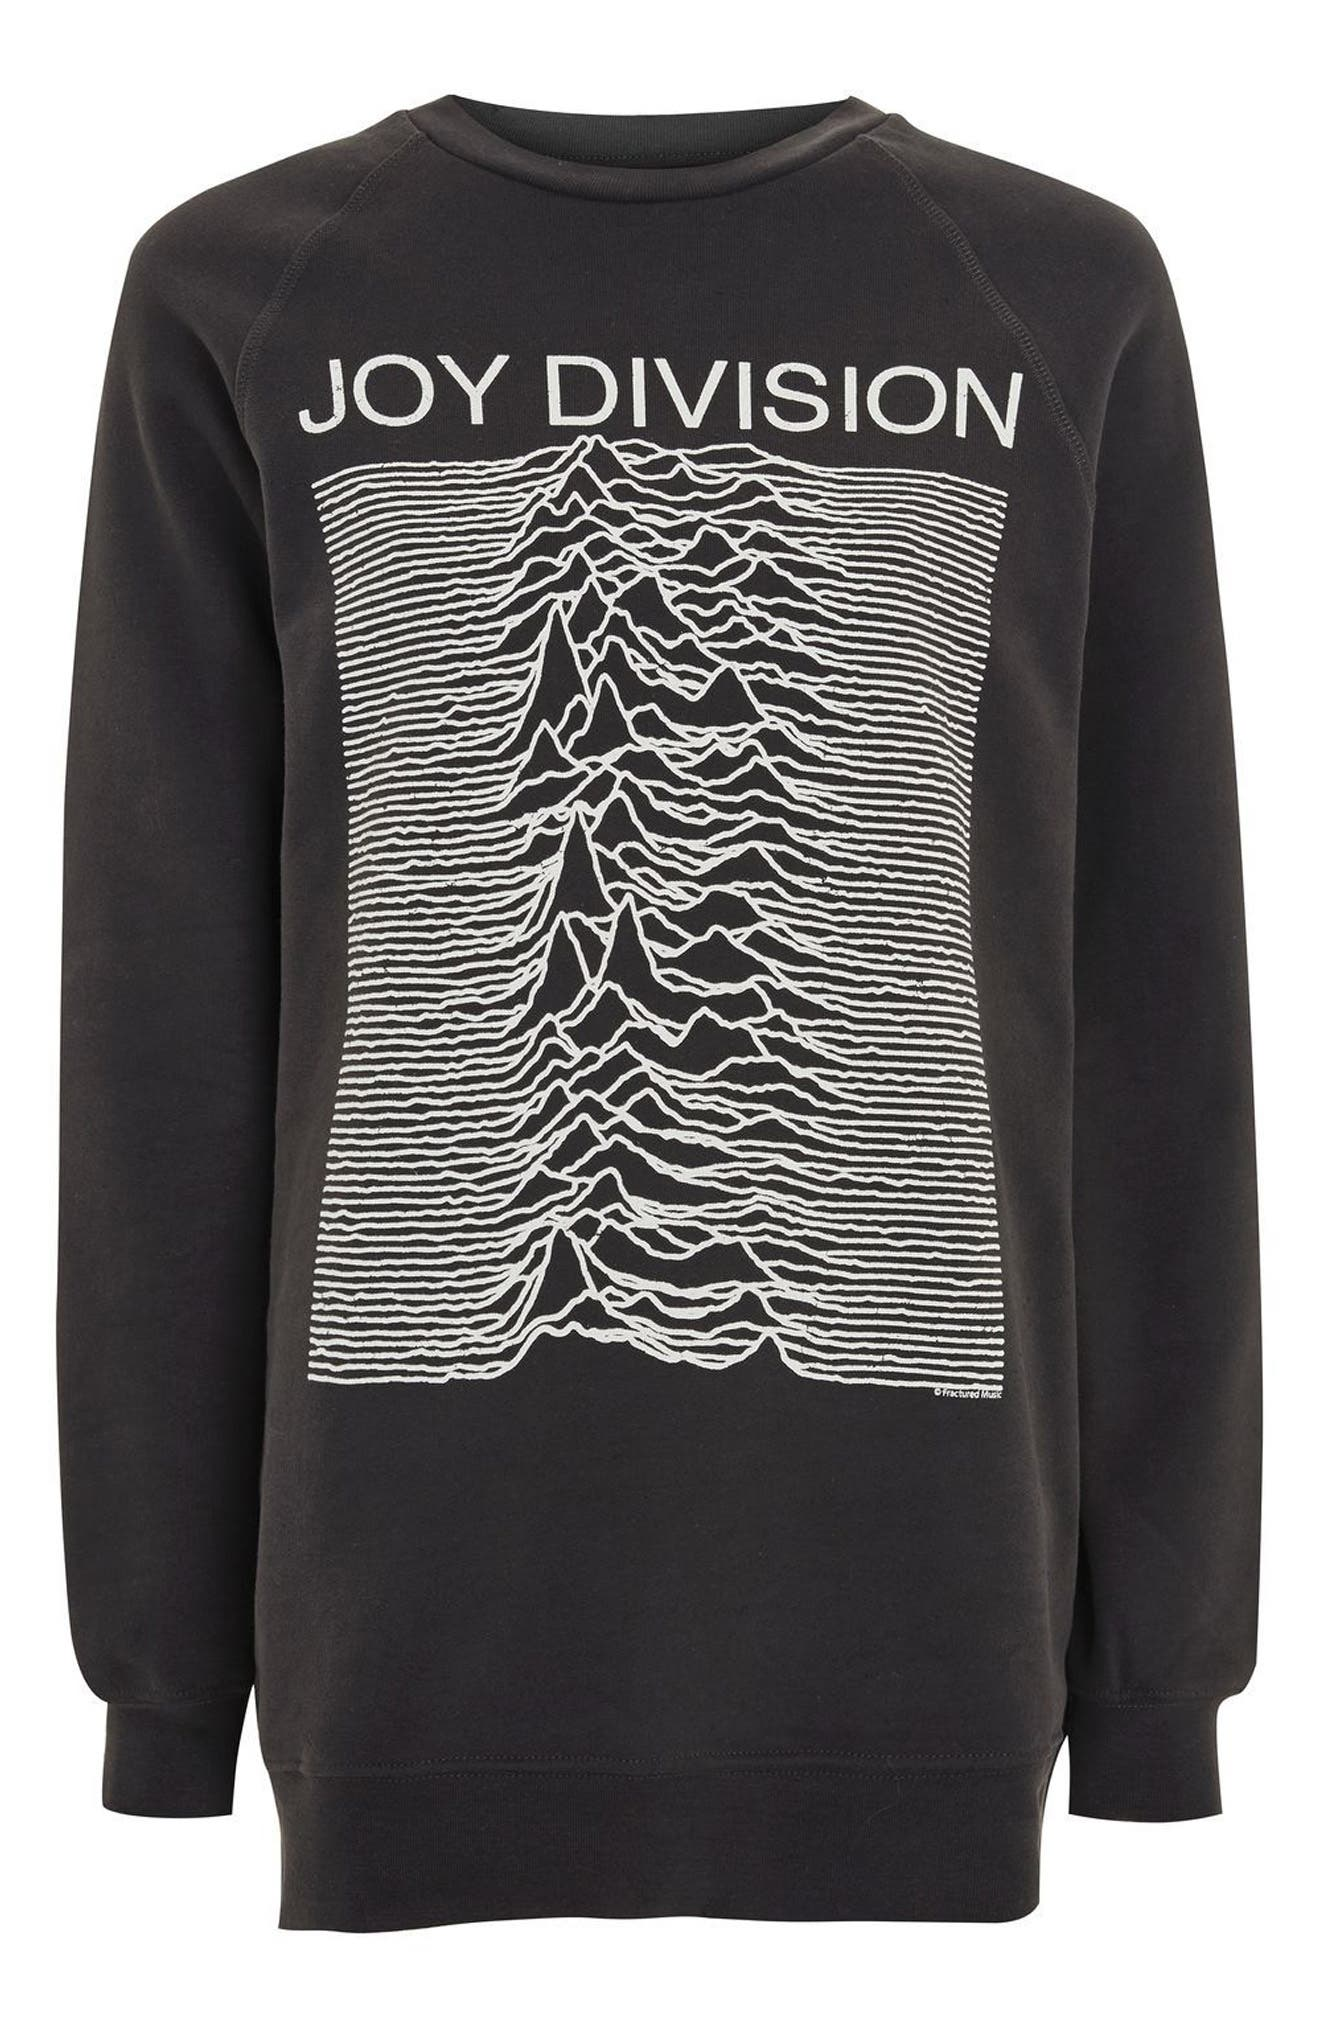 by And Finally Joy Division Sweatshirt,                             Alternate thumbnail 4, color,                             Washed Black Multi